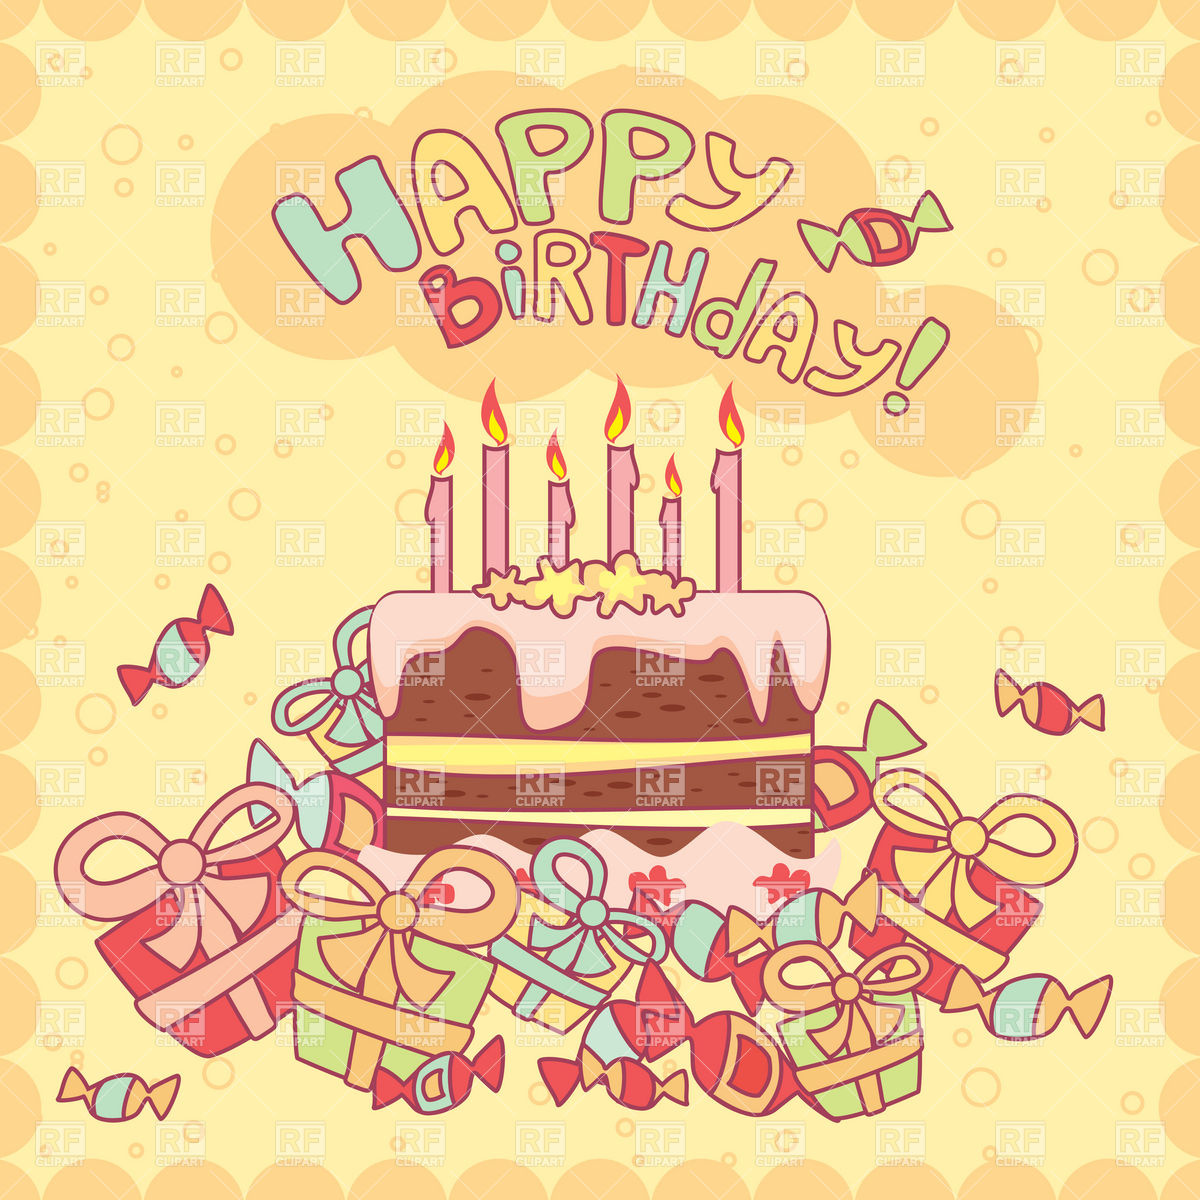 birthday greeting pictures free download ; happy-birthday-card-with-cake-candles-and-gifts-Download-Royalty-free-Vector-File-EPS-40109